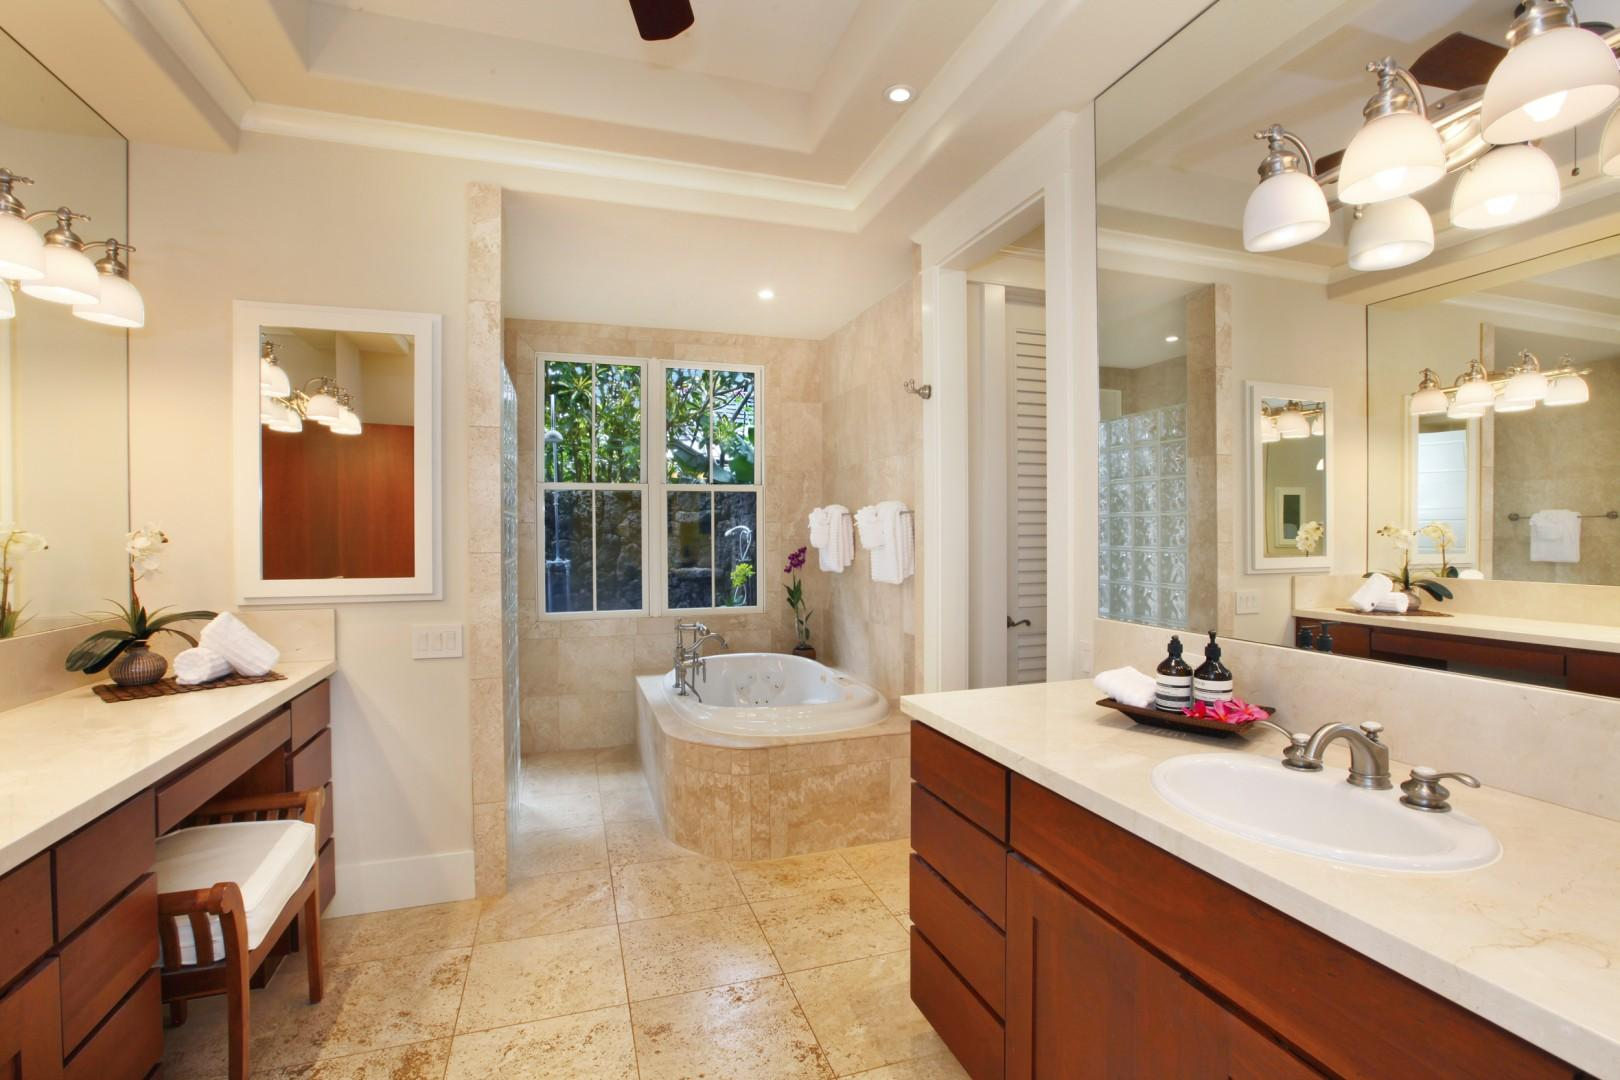 Downstairs master bathroom with jetted tub, lava rock shower and walk-in closet